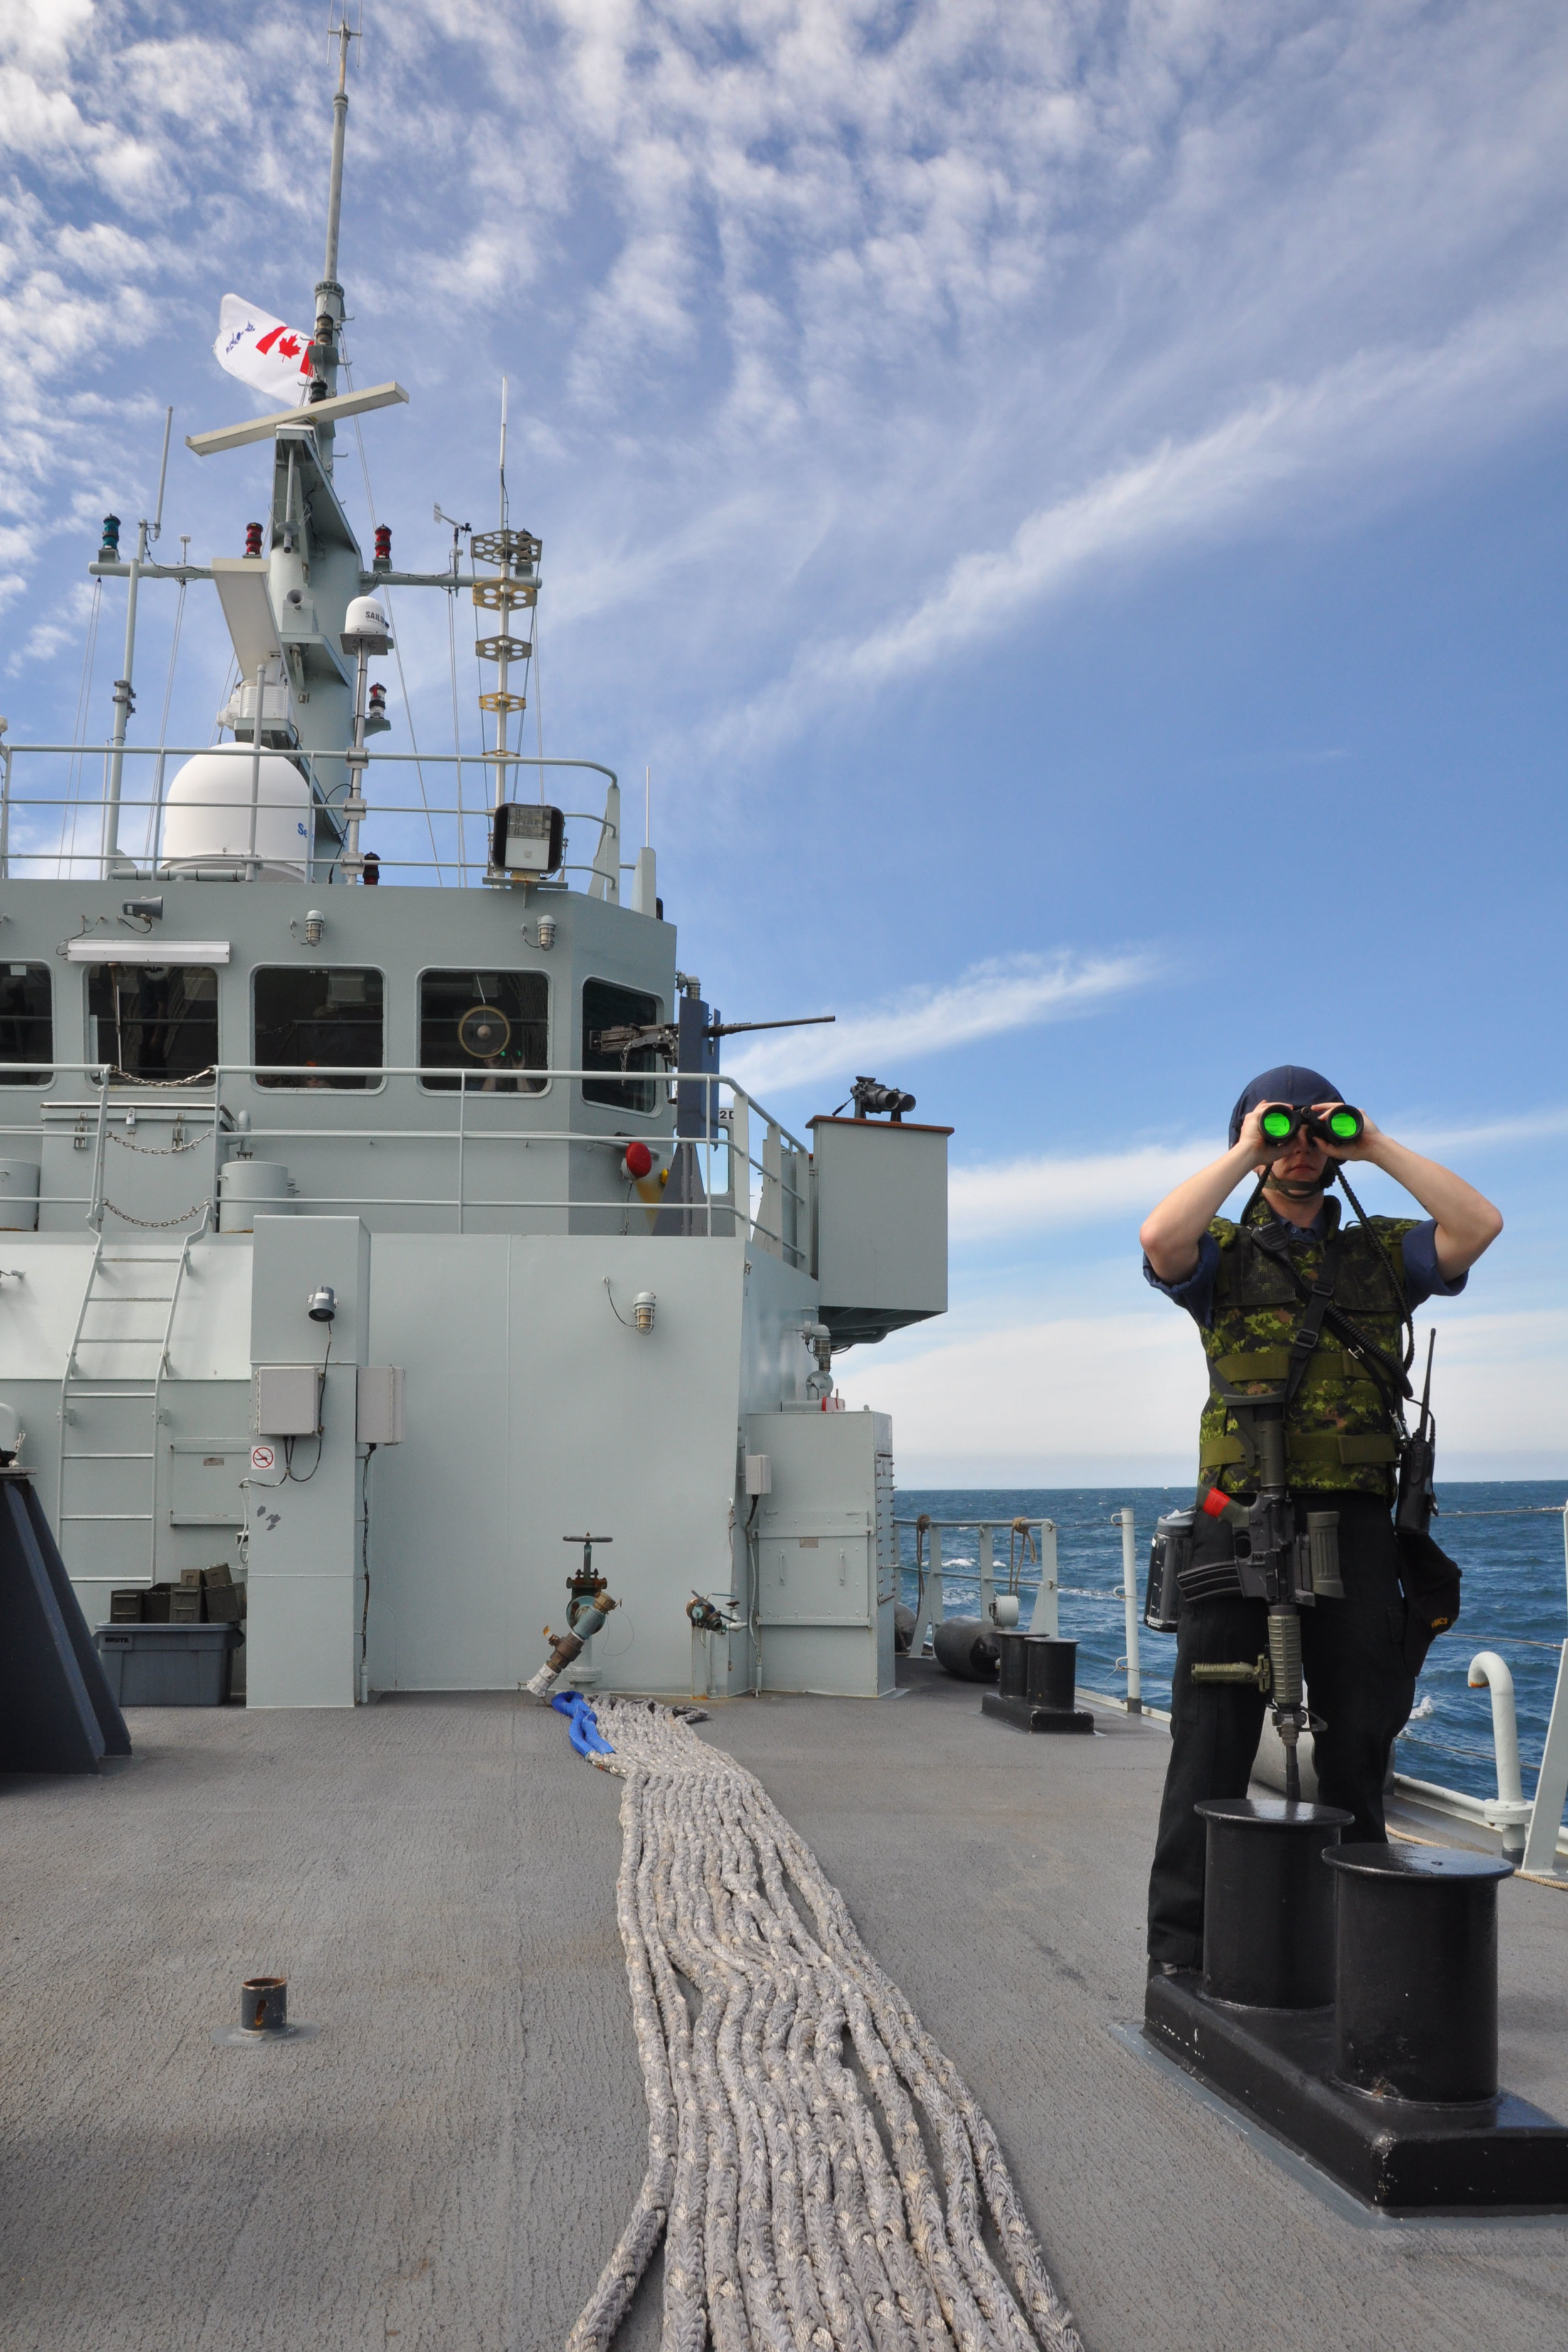 A crew member of HMCS Saskatoon conducts force protection when approaching the harbour of Ensanada, Mexico on March 5, 2016 during Operation CARIBBE. Canada contributes ships and CP-140 Aurora aircraft to the joint interagency effort to prevent illicit trafficking in the Caribbean sea, the eastern Pacific Ocean, and the coastal waters of Central America. (DND)